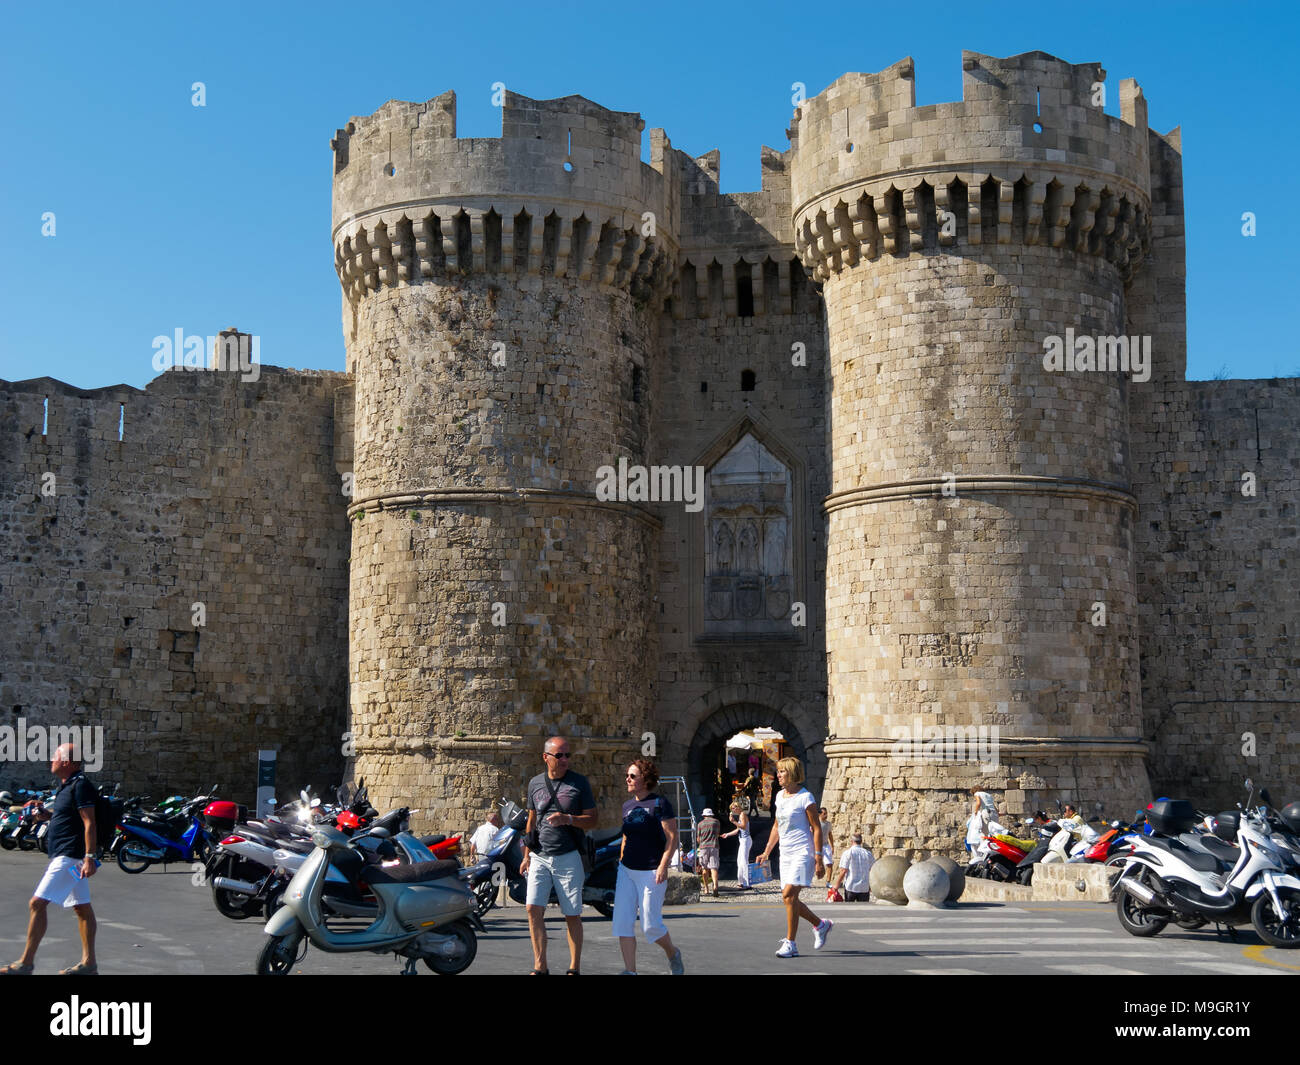 RHODES CITY, GREECE - SEPTEMBER 30, 2011:  Tourists admite Towers of Marine Gate of Old Town, ancient fort of  Rhodes Island Stock Photo